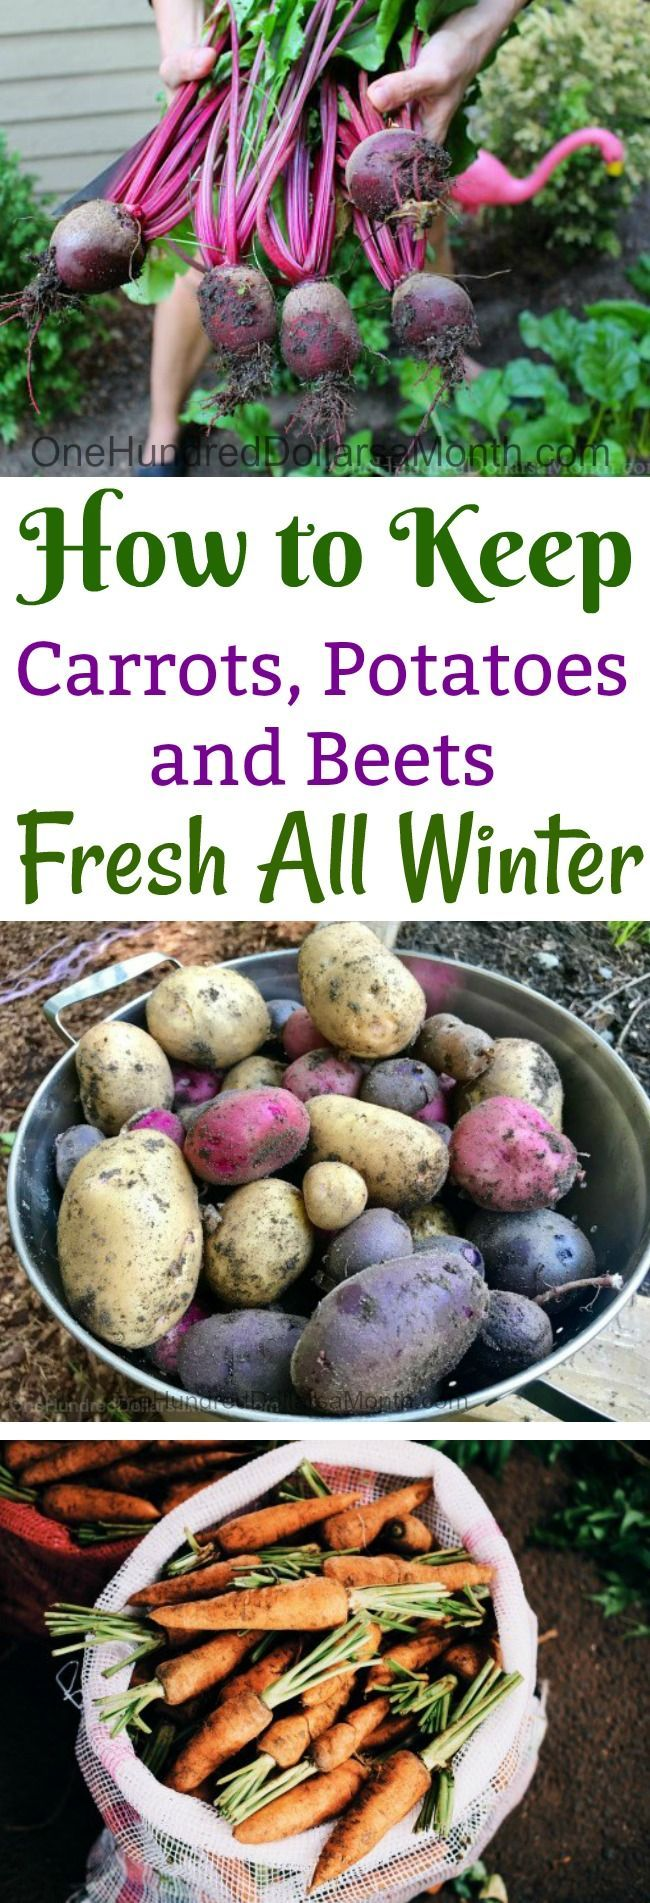 Winter Harvest, How to Store Root Crops, How to Store Beets, How to Store Potato...